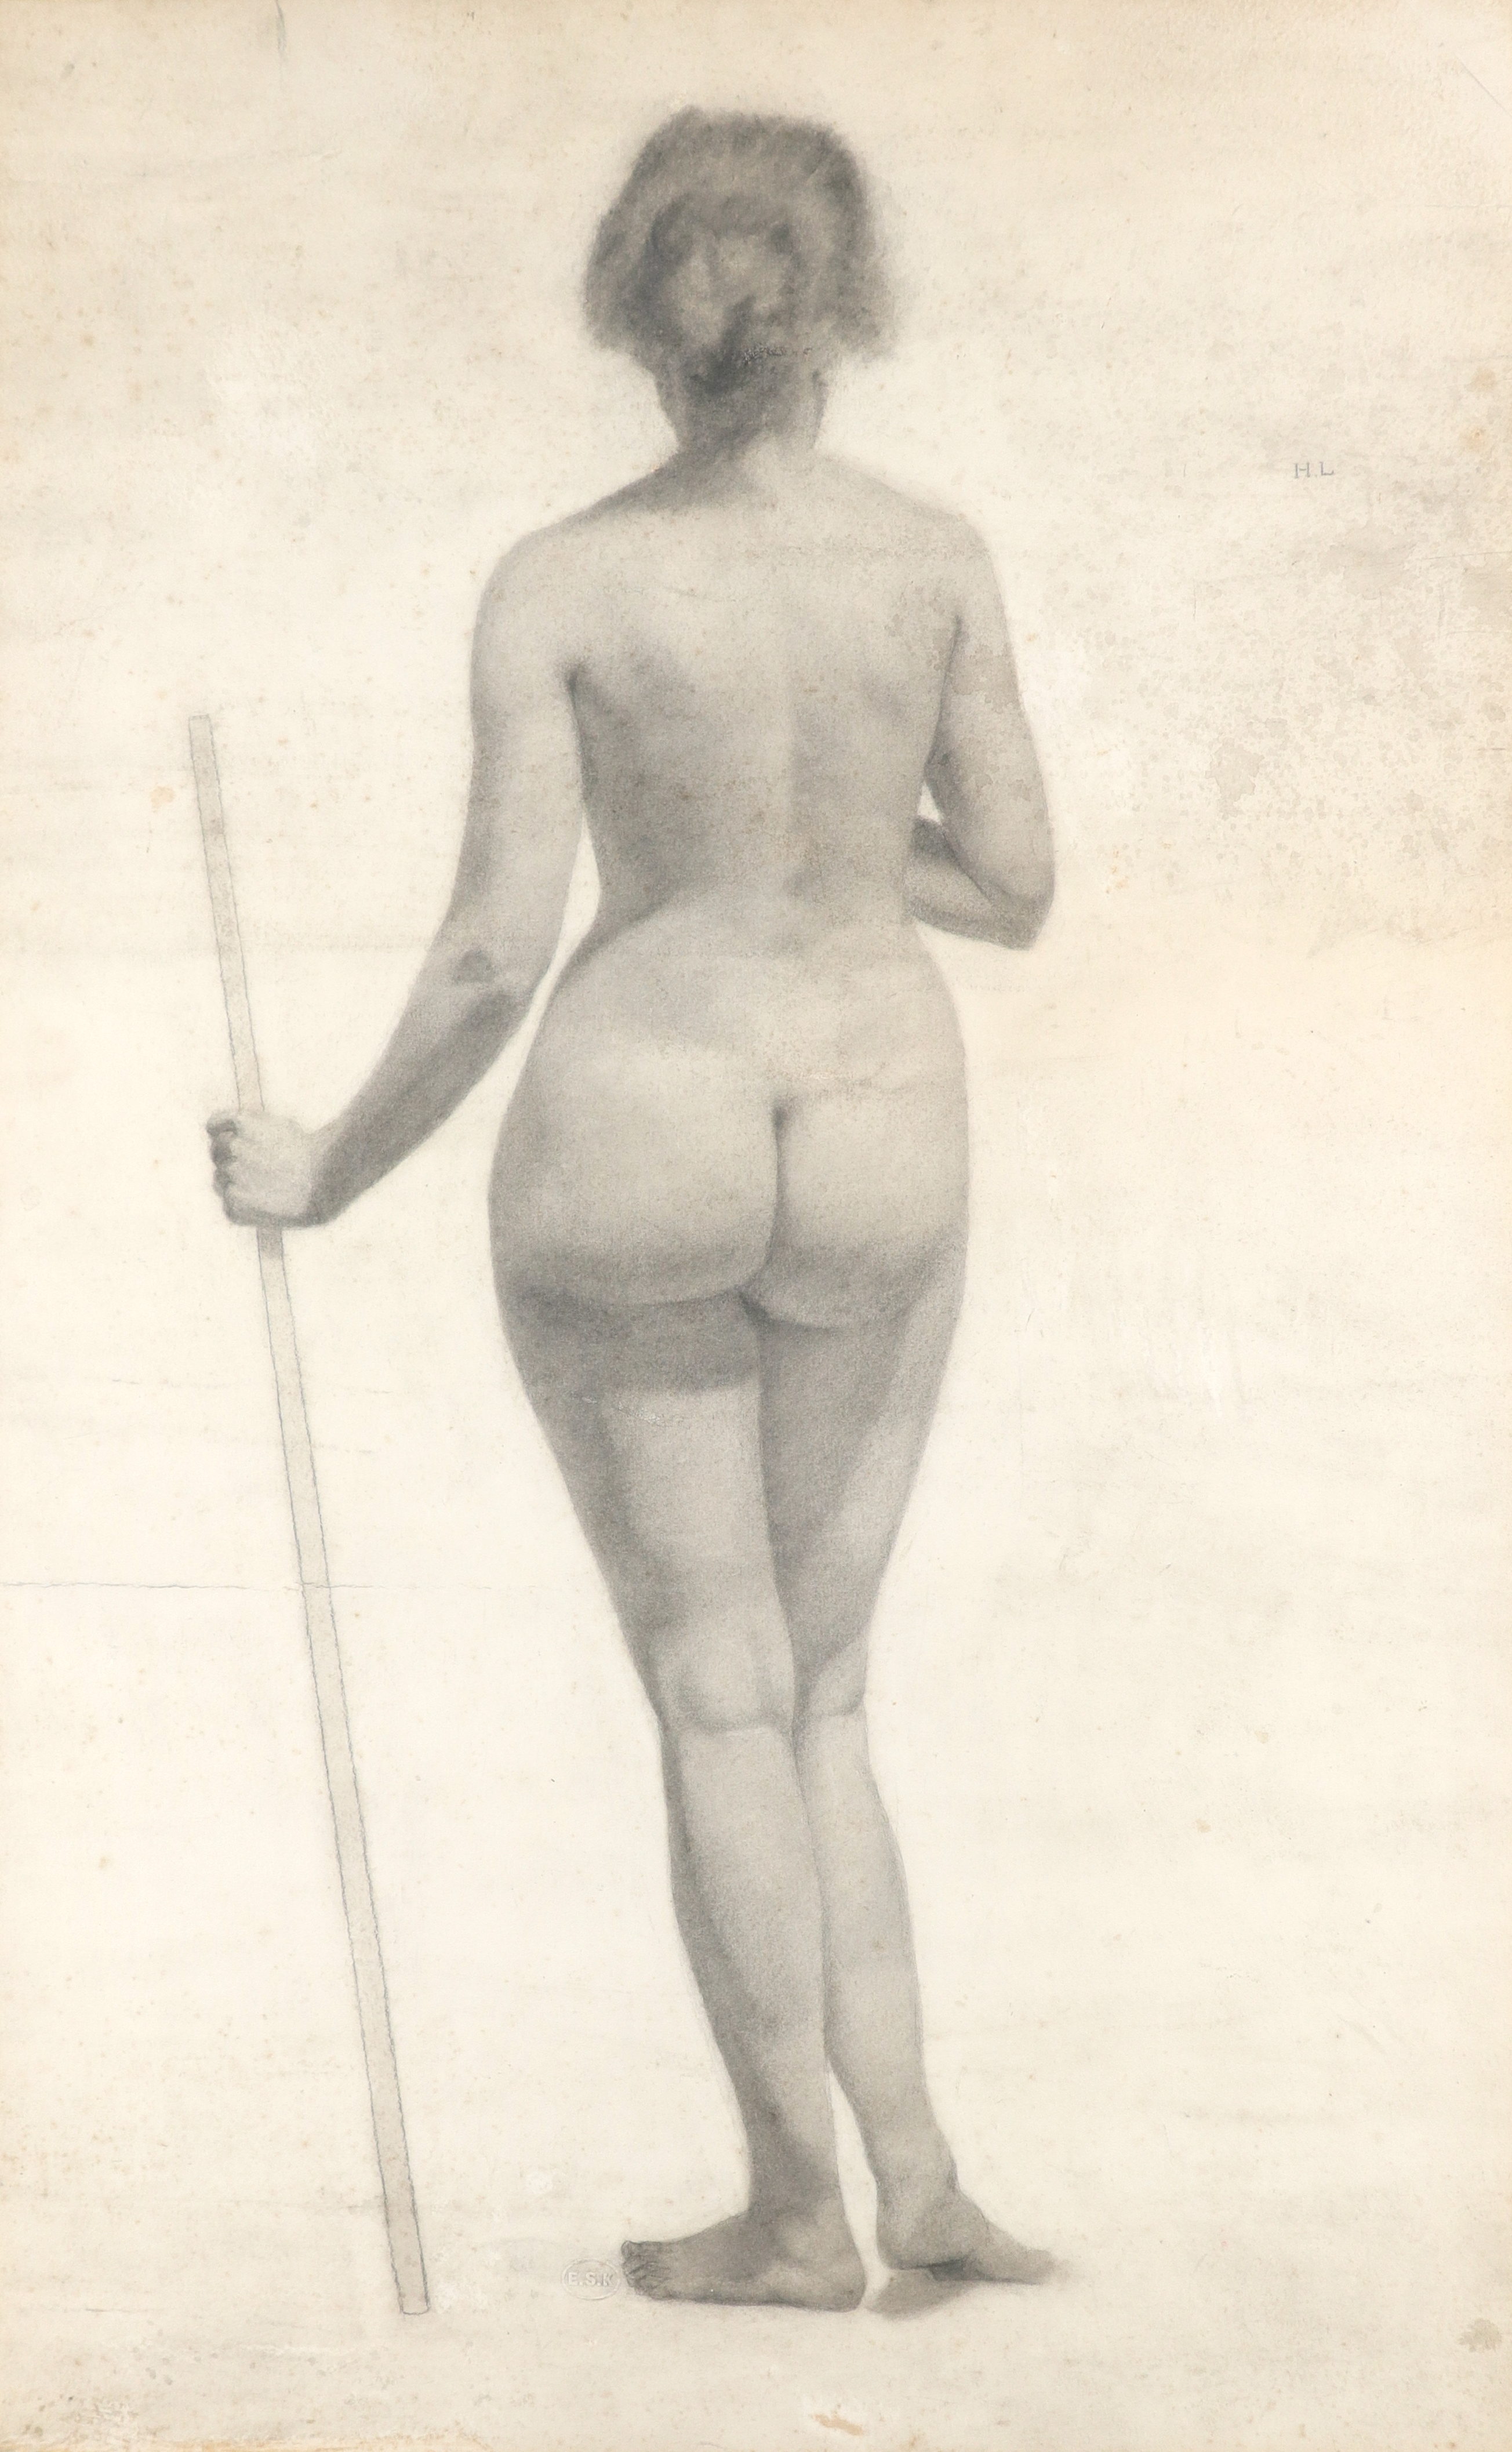 Lillian May Bevis Rowles (act. 1914-1918) Standing nude from the rear Inscribed H.L. (upper right)